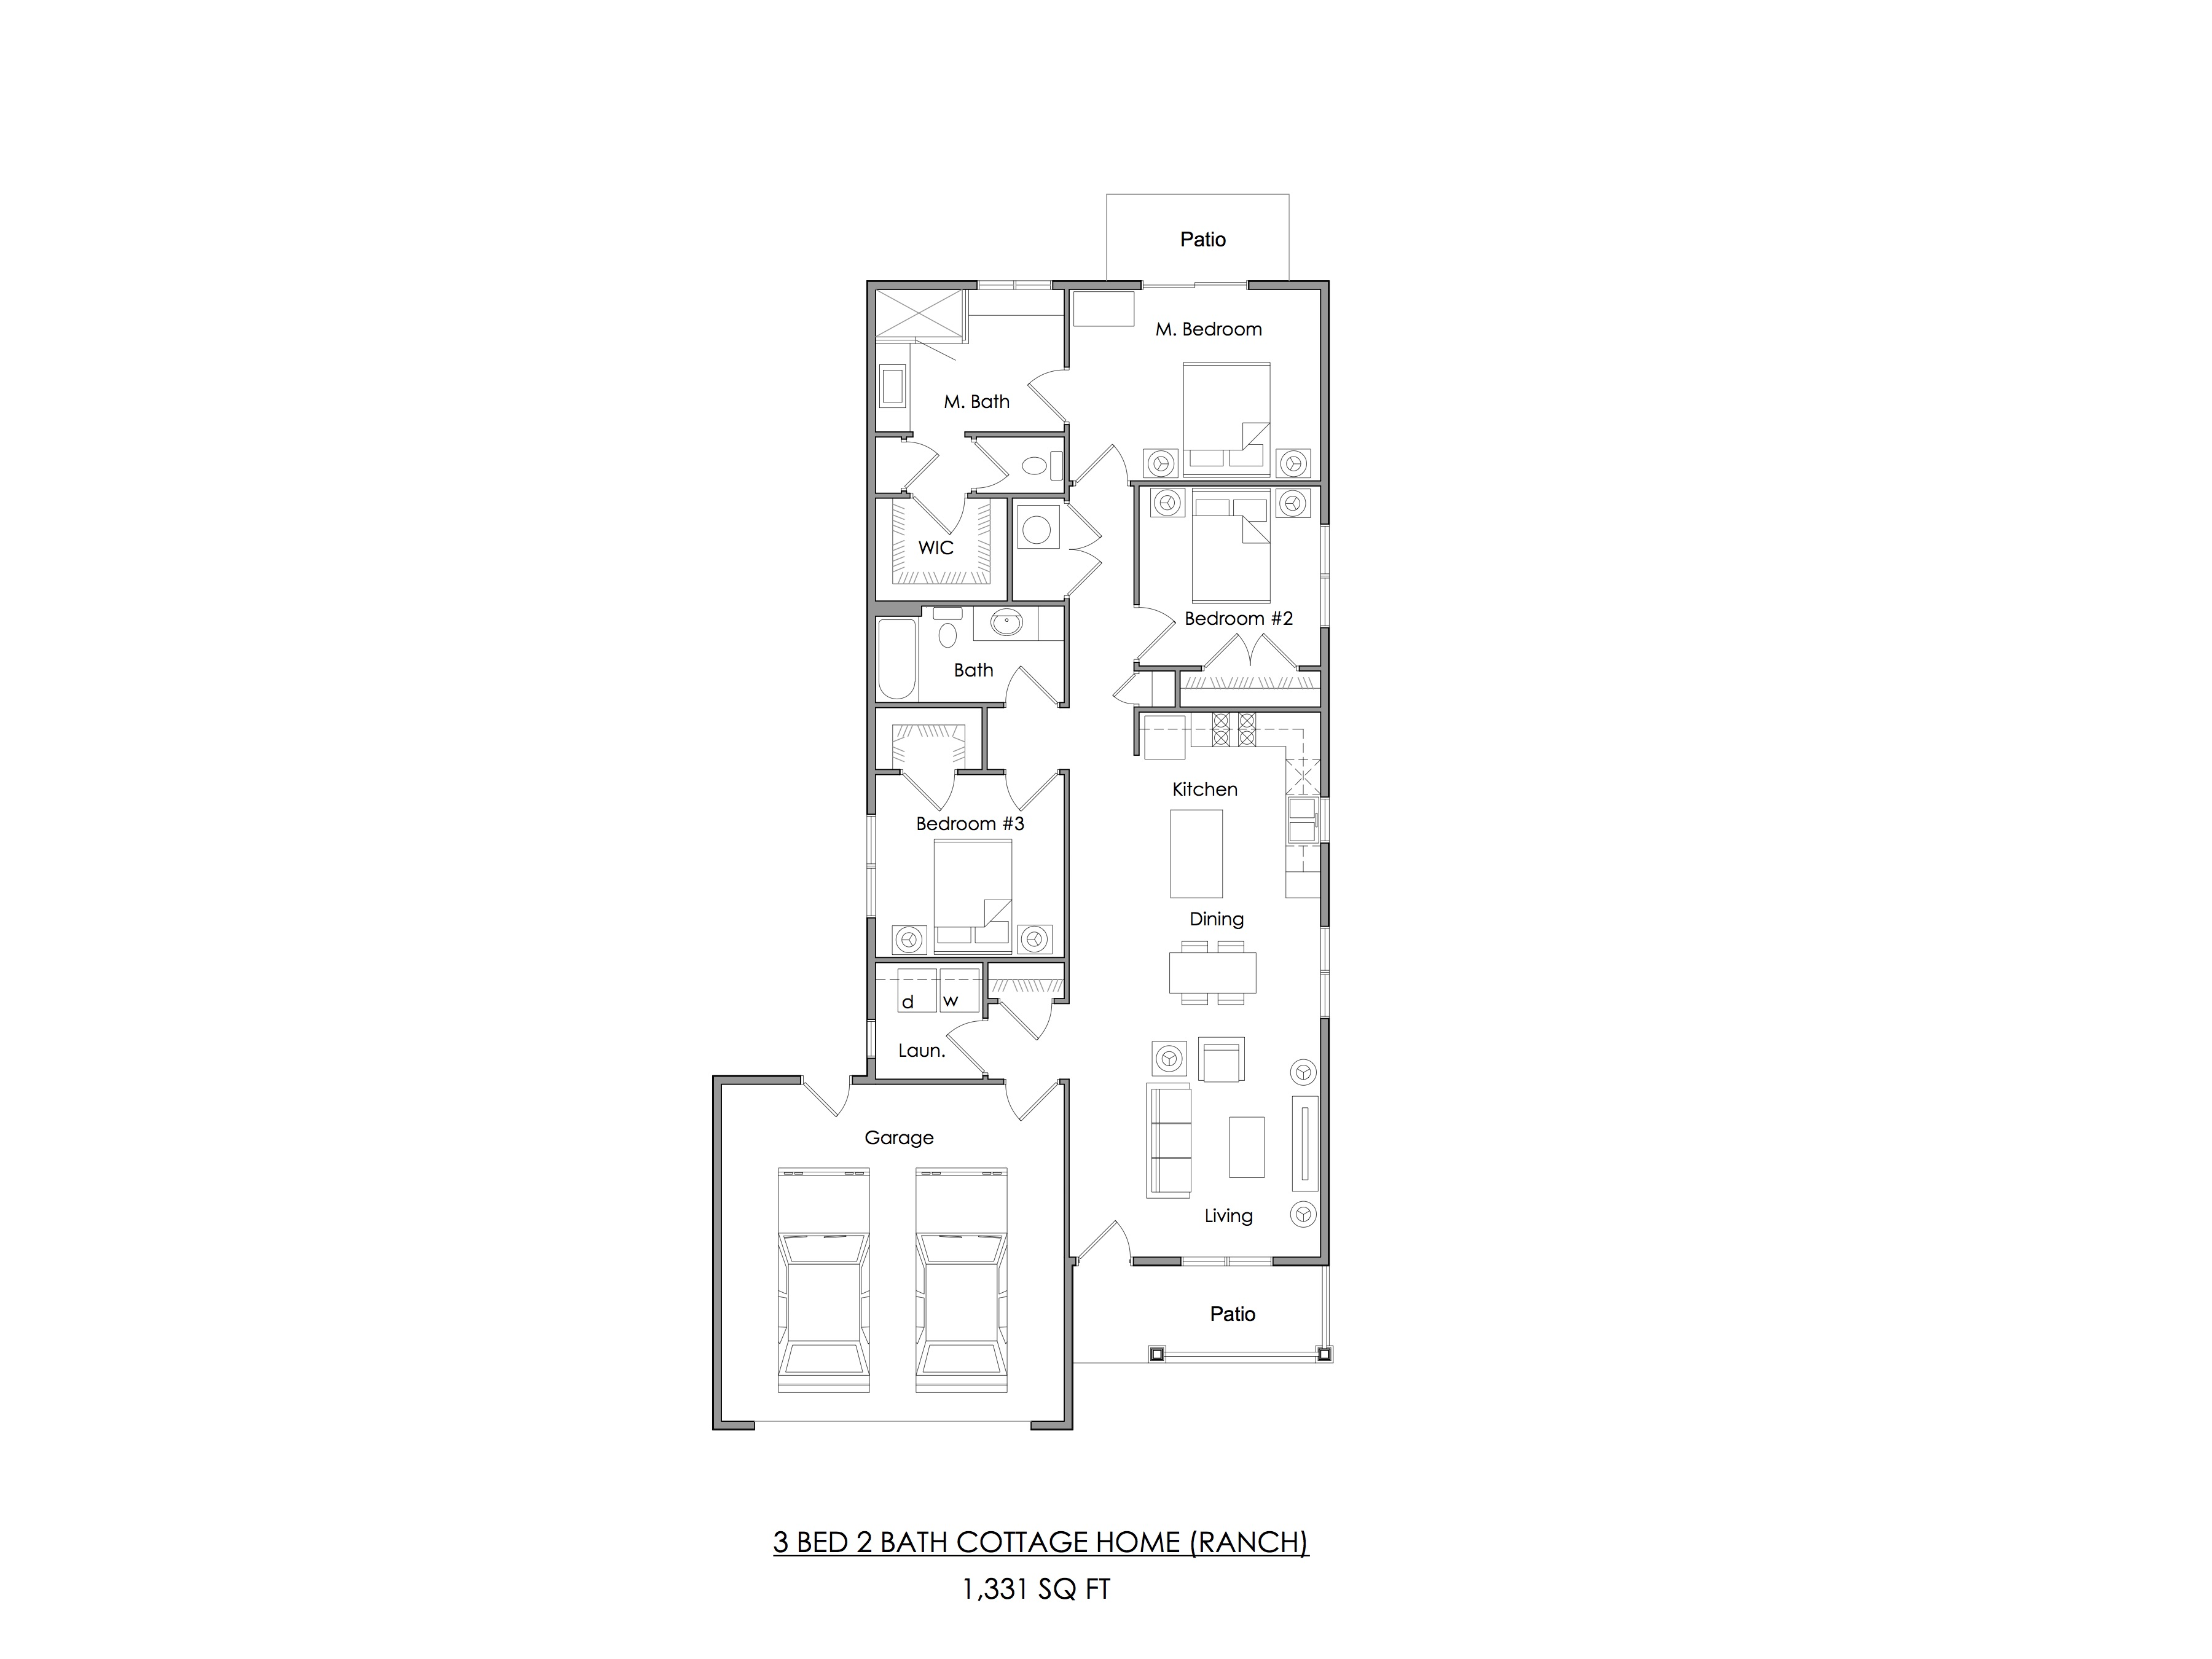 Three bedroom Cottage home floor plan (ranch) — 1,331 sq ft.